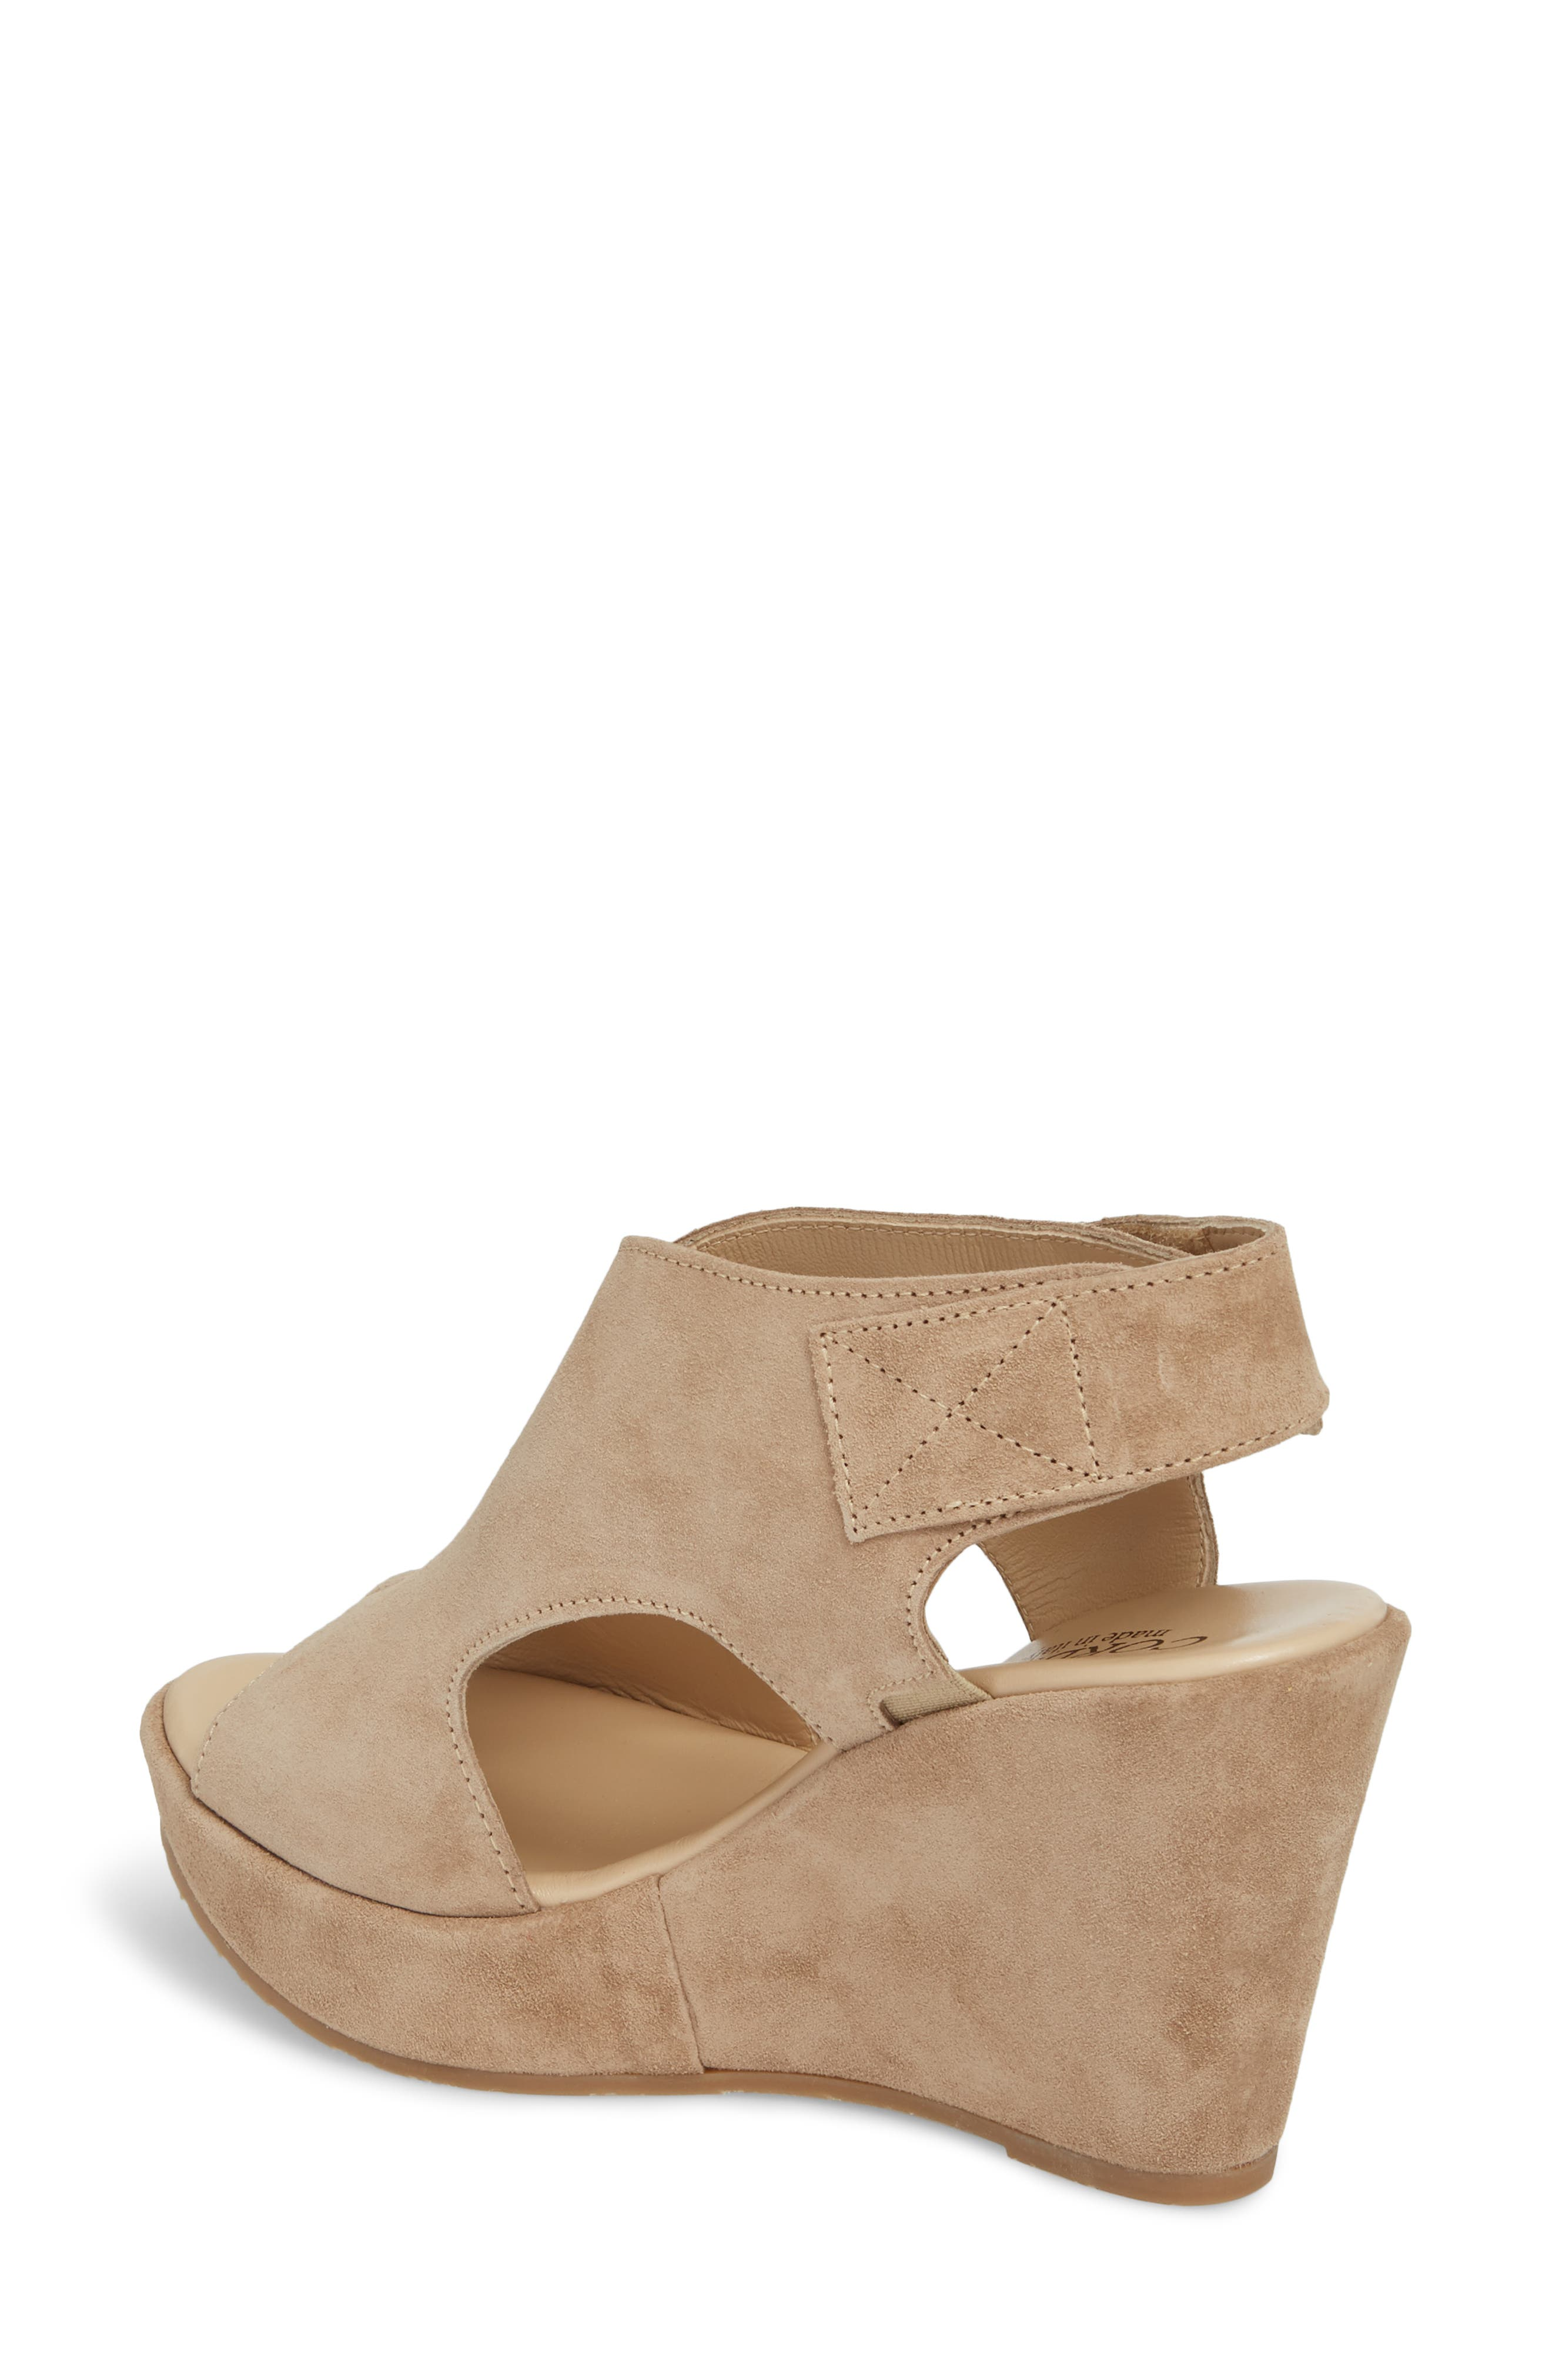 Reed Wedge Sandal,                             Alternate thumbnail 2, color,                             Corda Taupe Suede